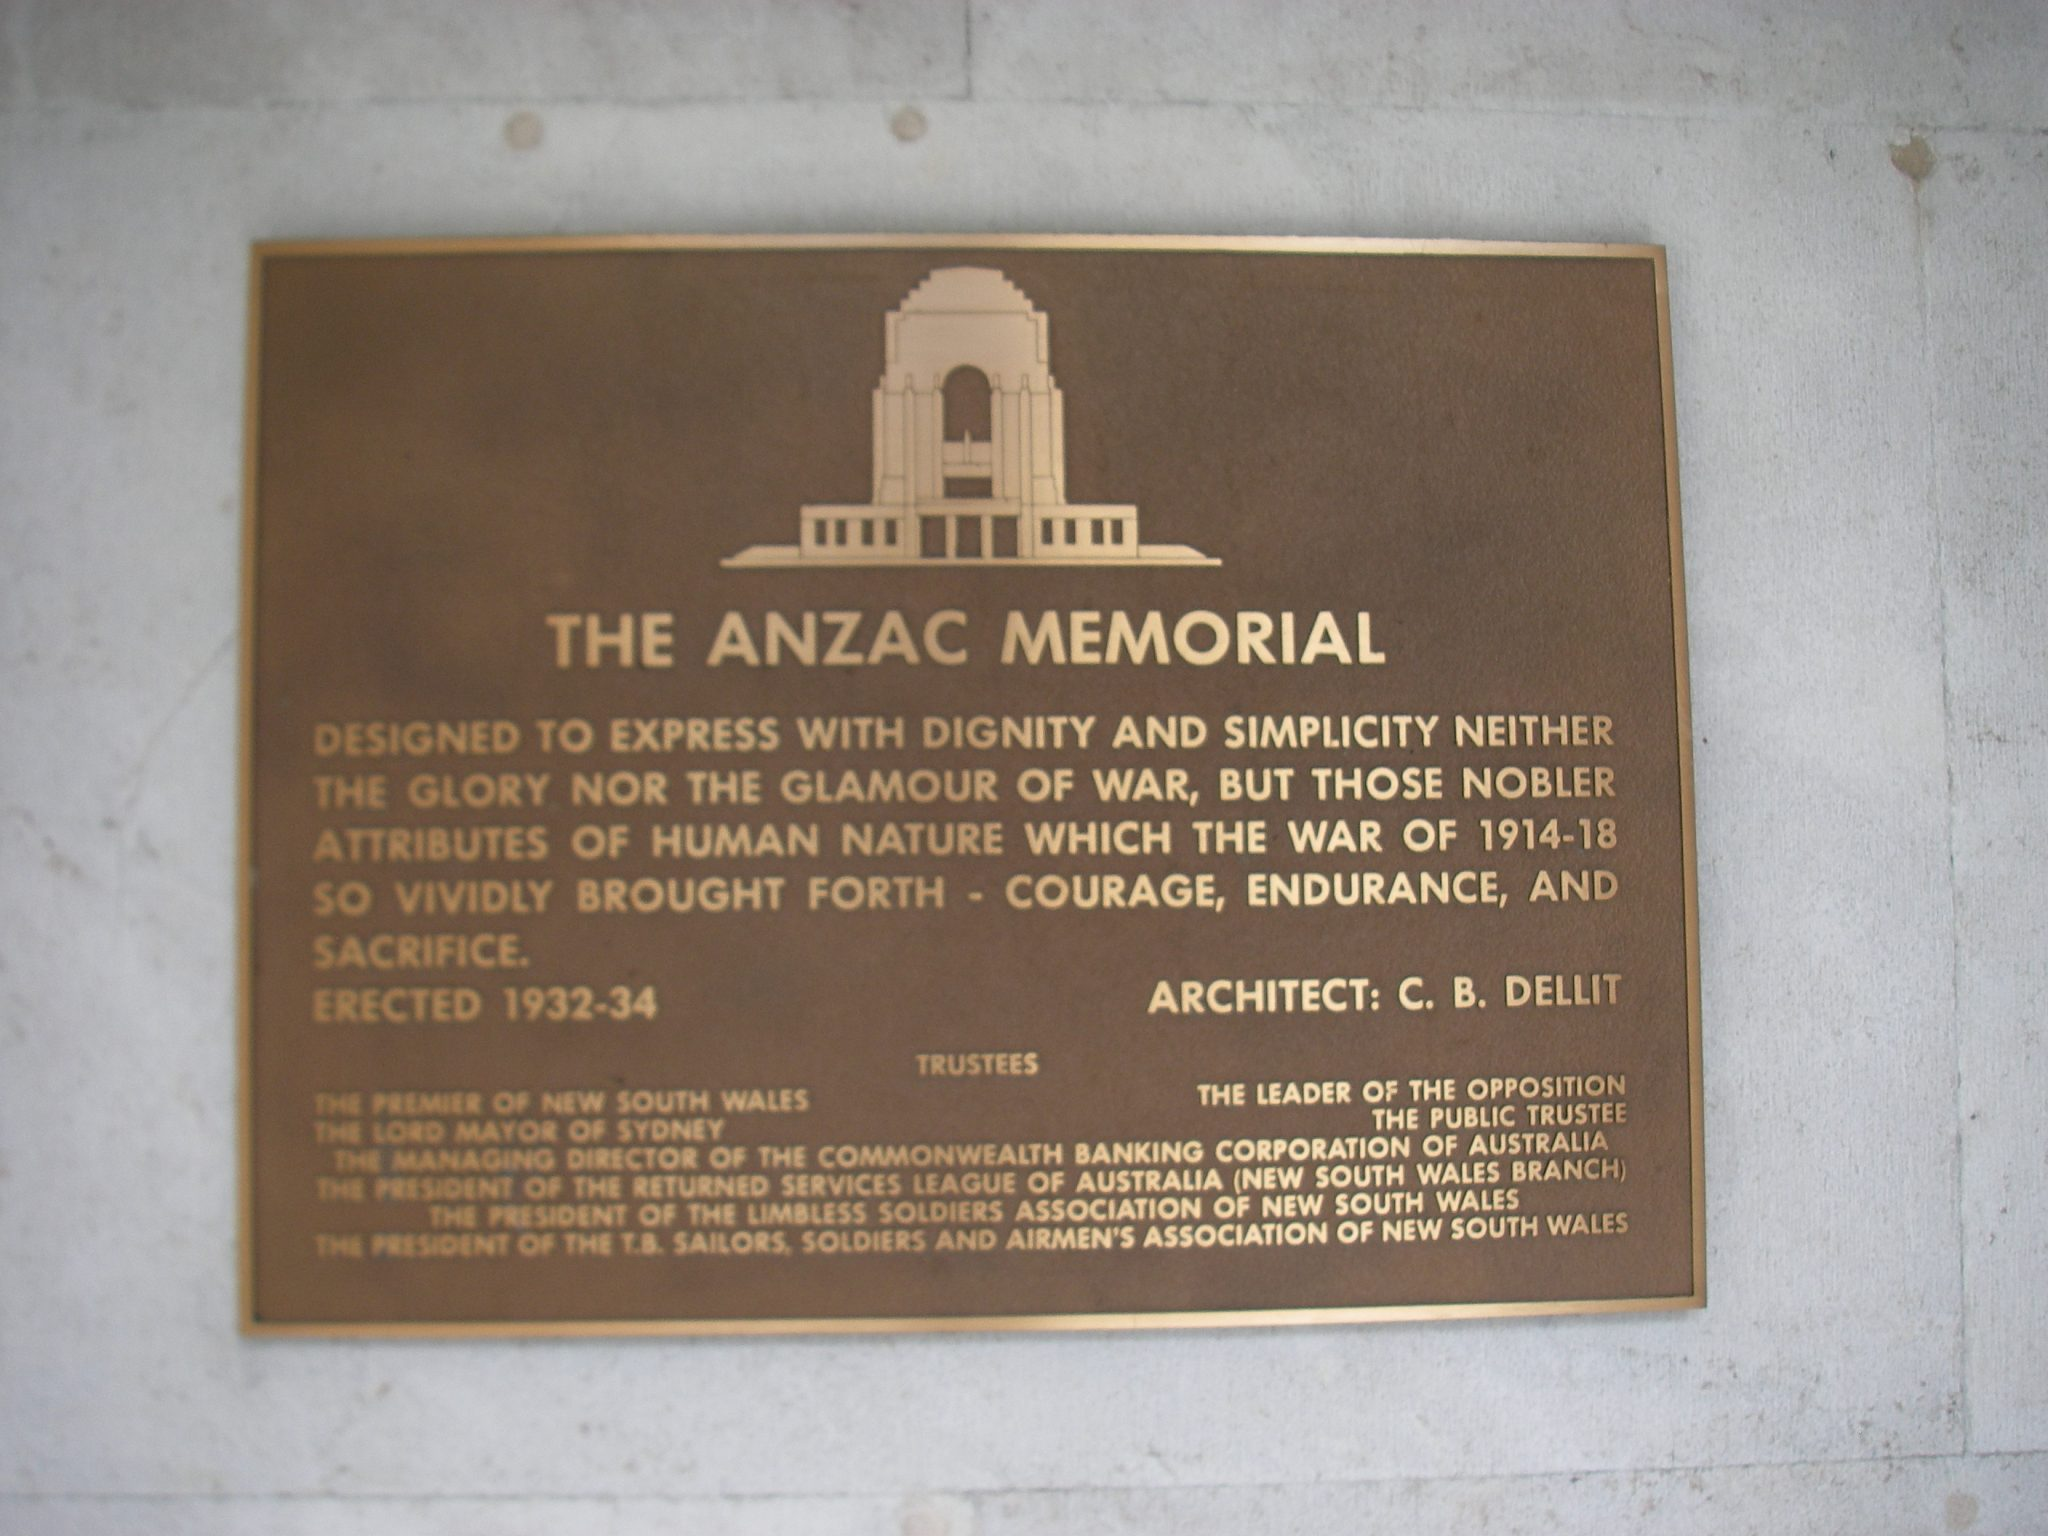 102. The plaque explaining the ANZAC Memorial in the heart of Sydney